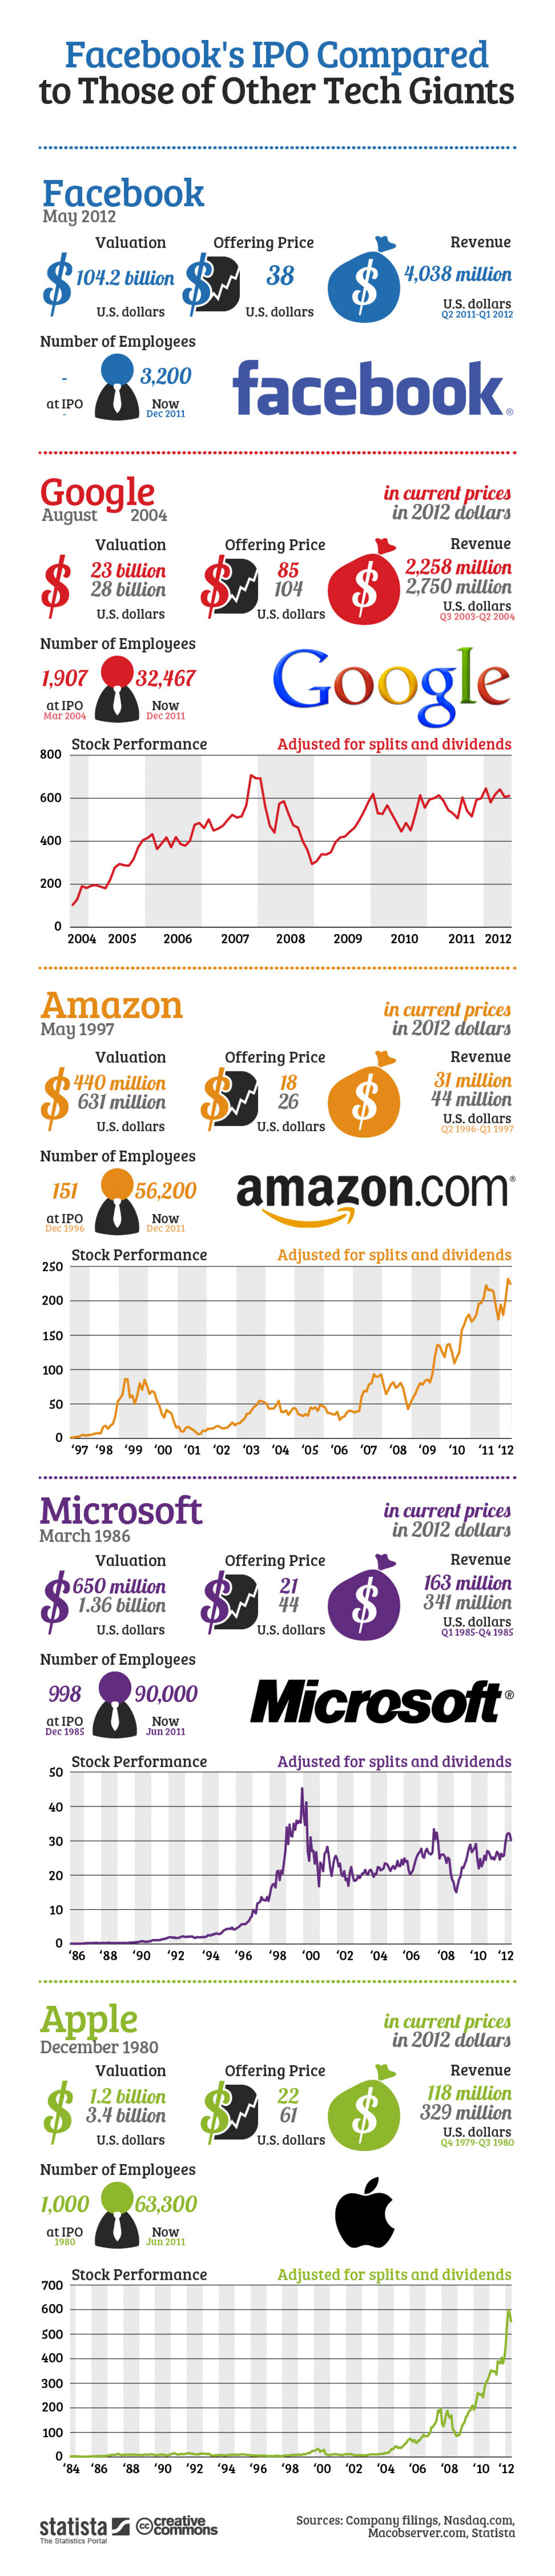 Facebook's IPO Compared Infographic